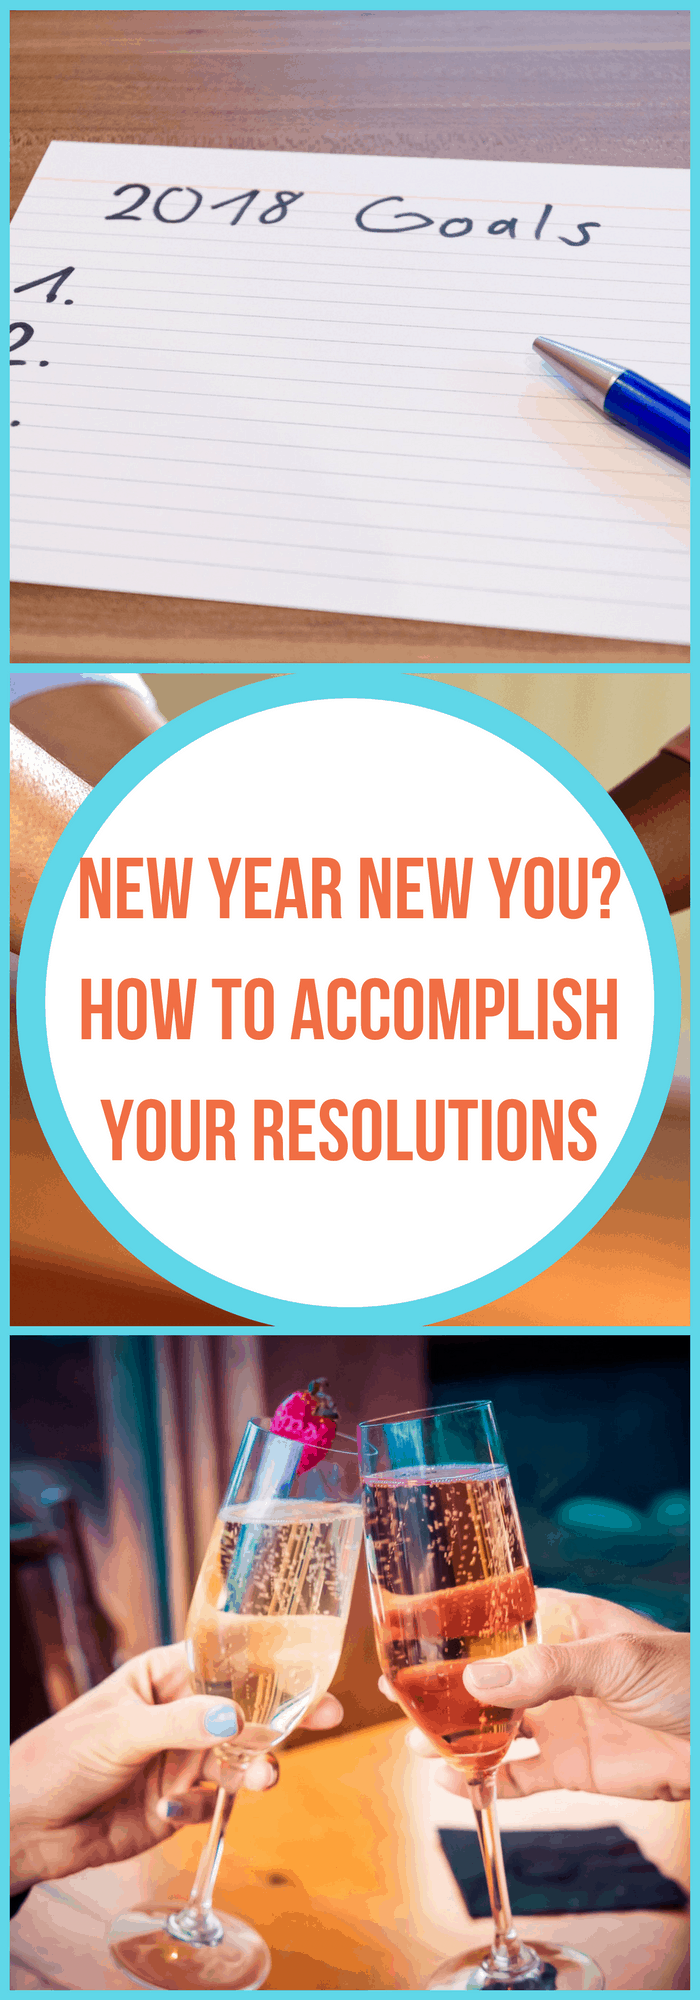 Organization-New Year New You? How to Accomplish Your Resolutions--The Organized Mom